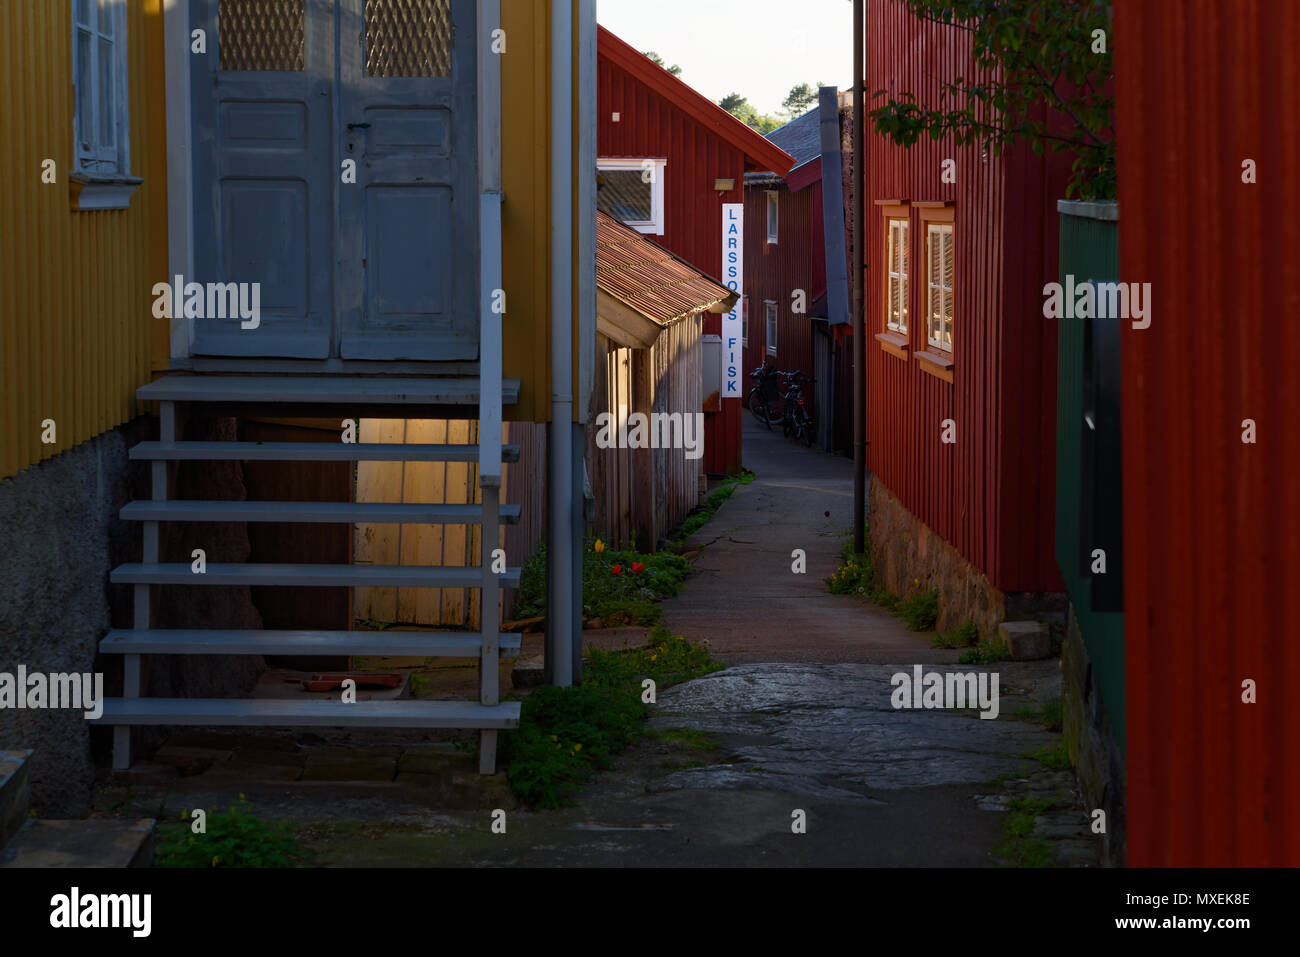 Mollosund, Orust, Sweden - May 18, 2018: Travel documentary of everyday life and place. Small village alley with a fish store at the end. The evening  Stock Photo